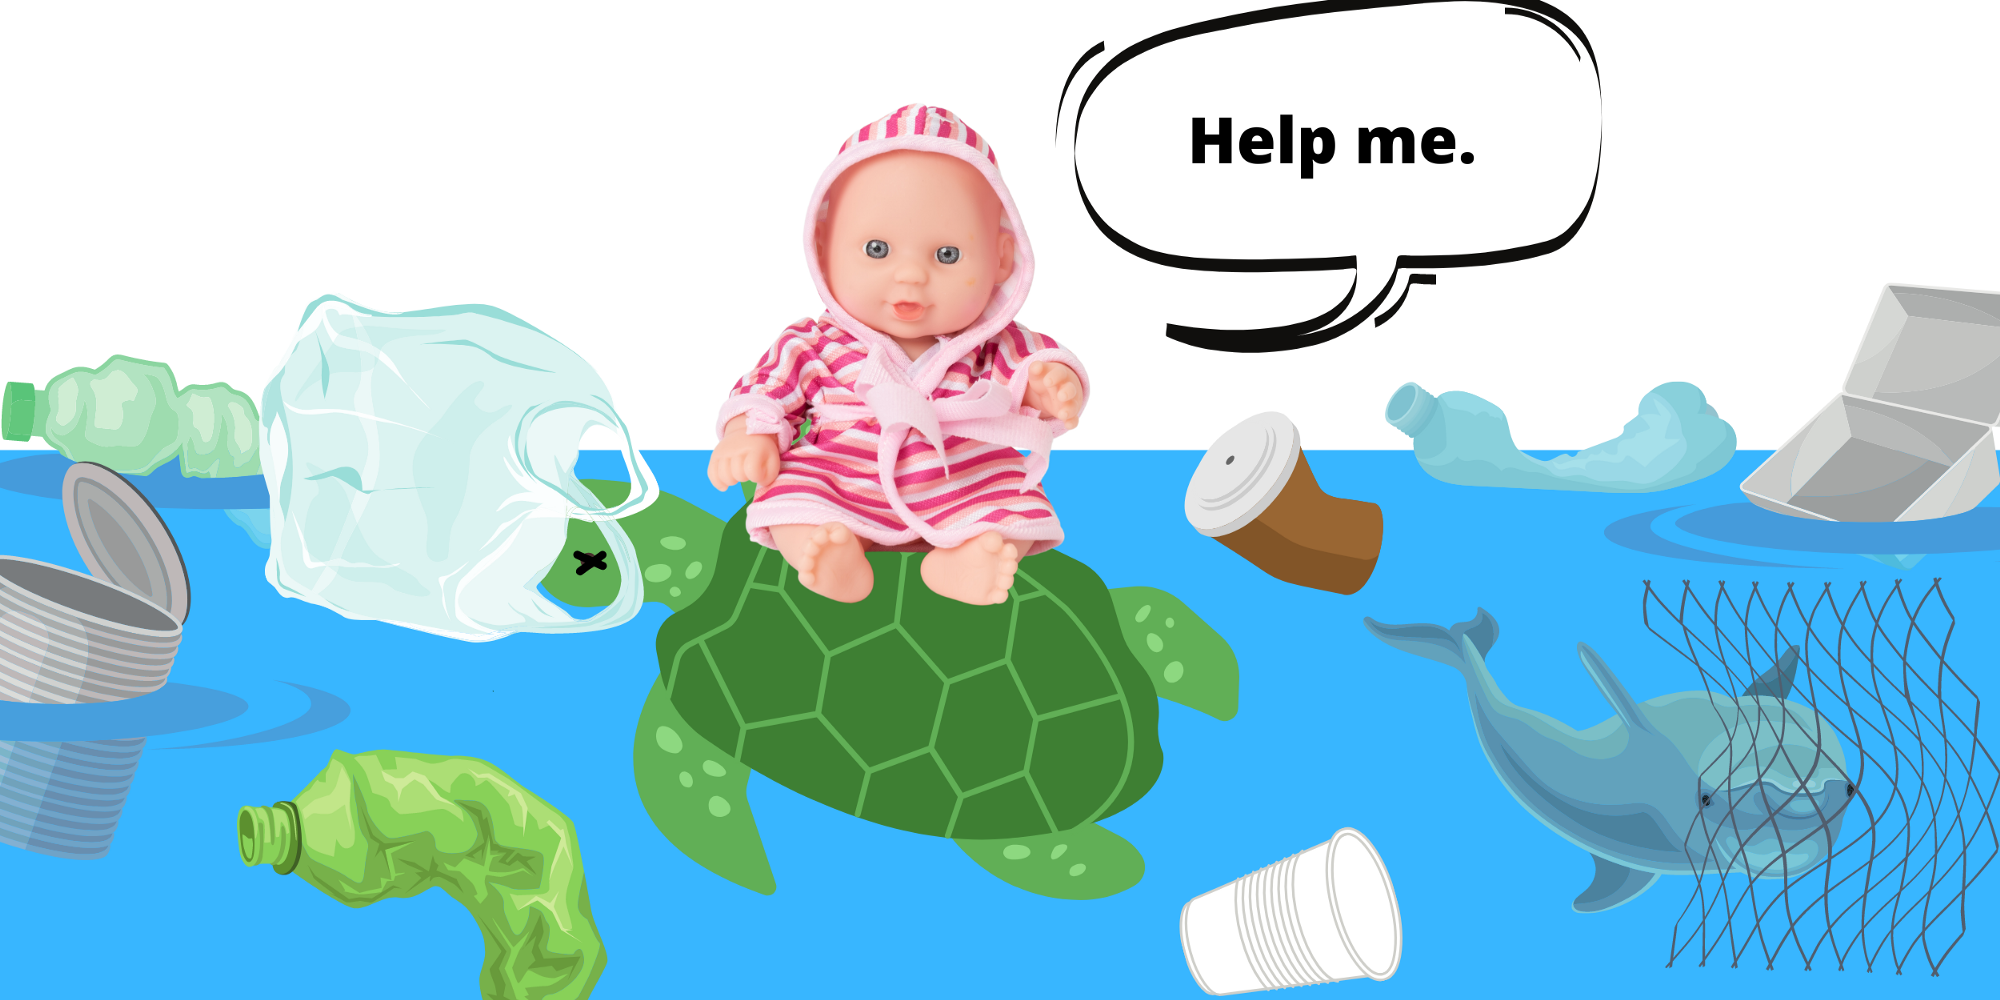 small doll sits on dead turtle in a polluted ocean